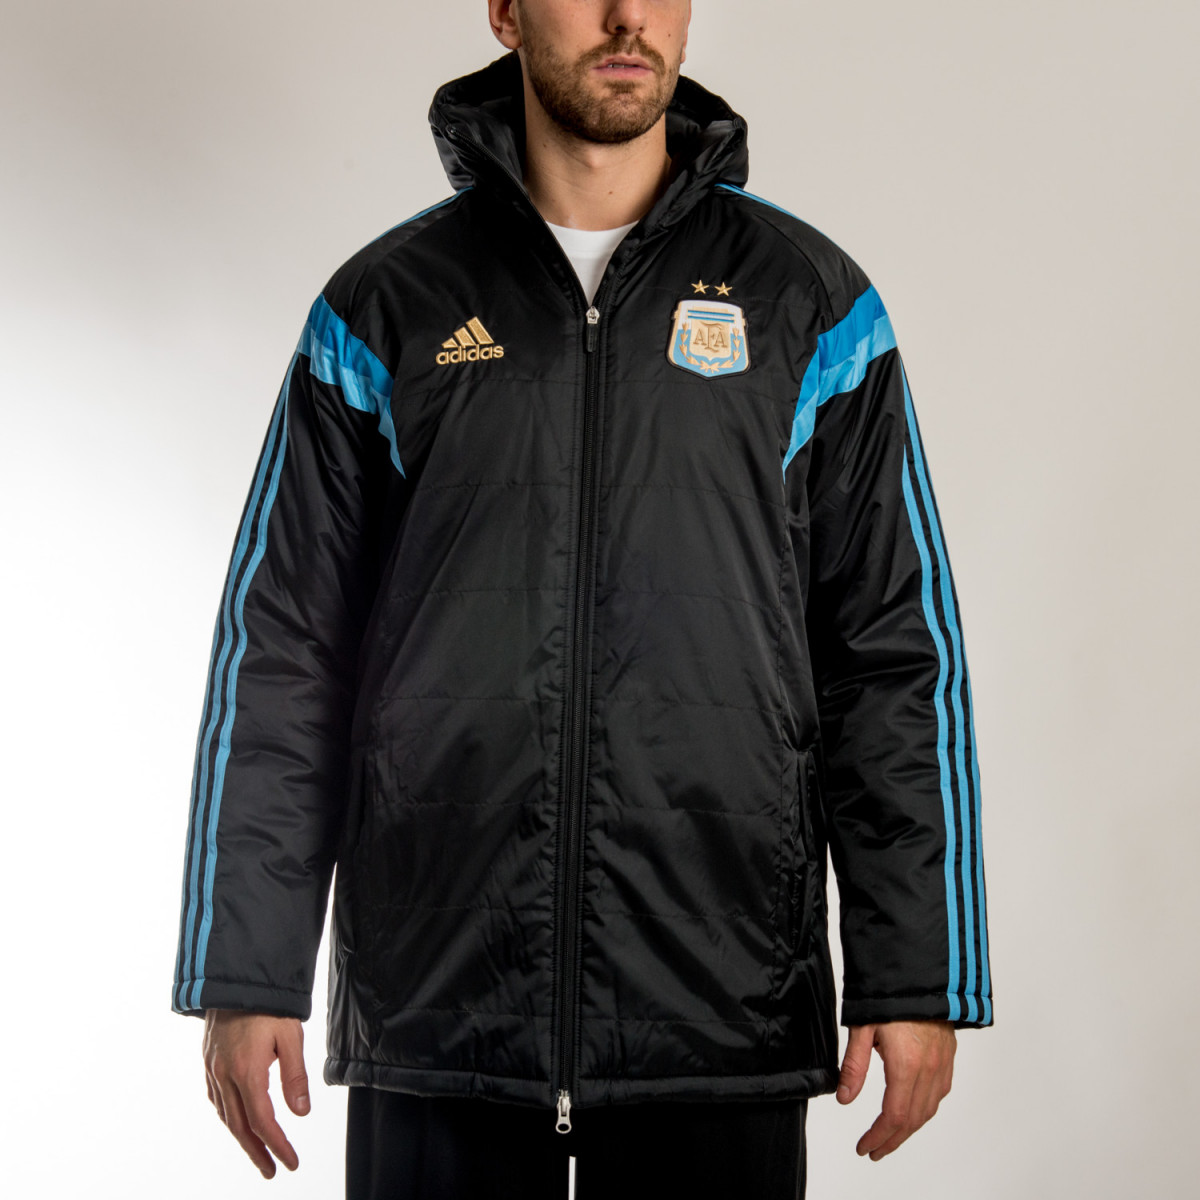 CAMPERON ADIDAS AFA STADIUM JACKET 2014